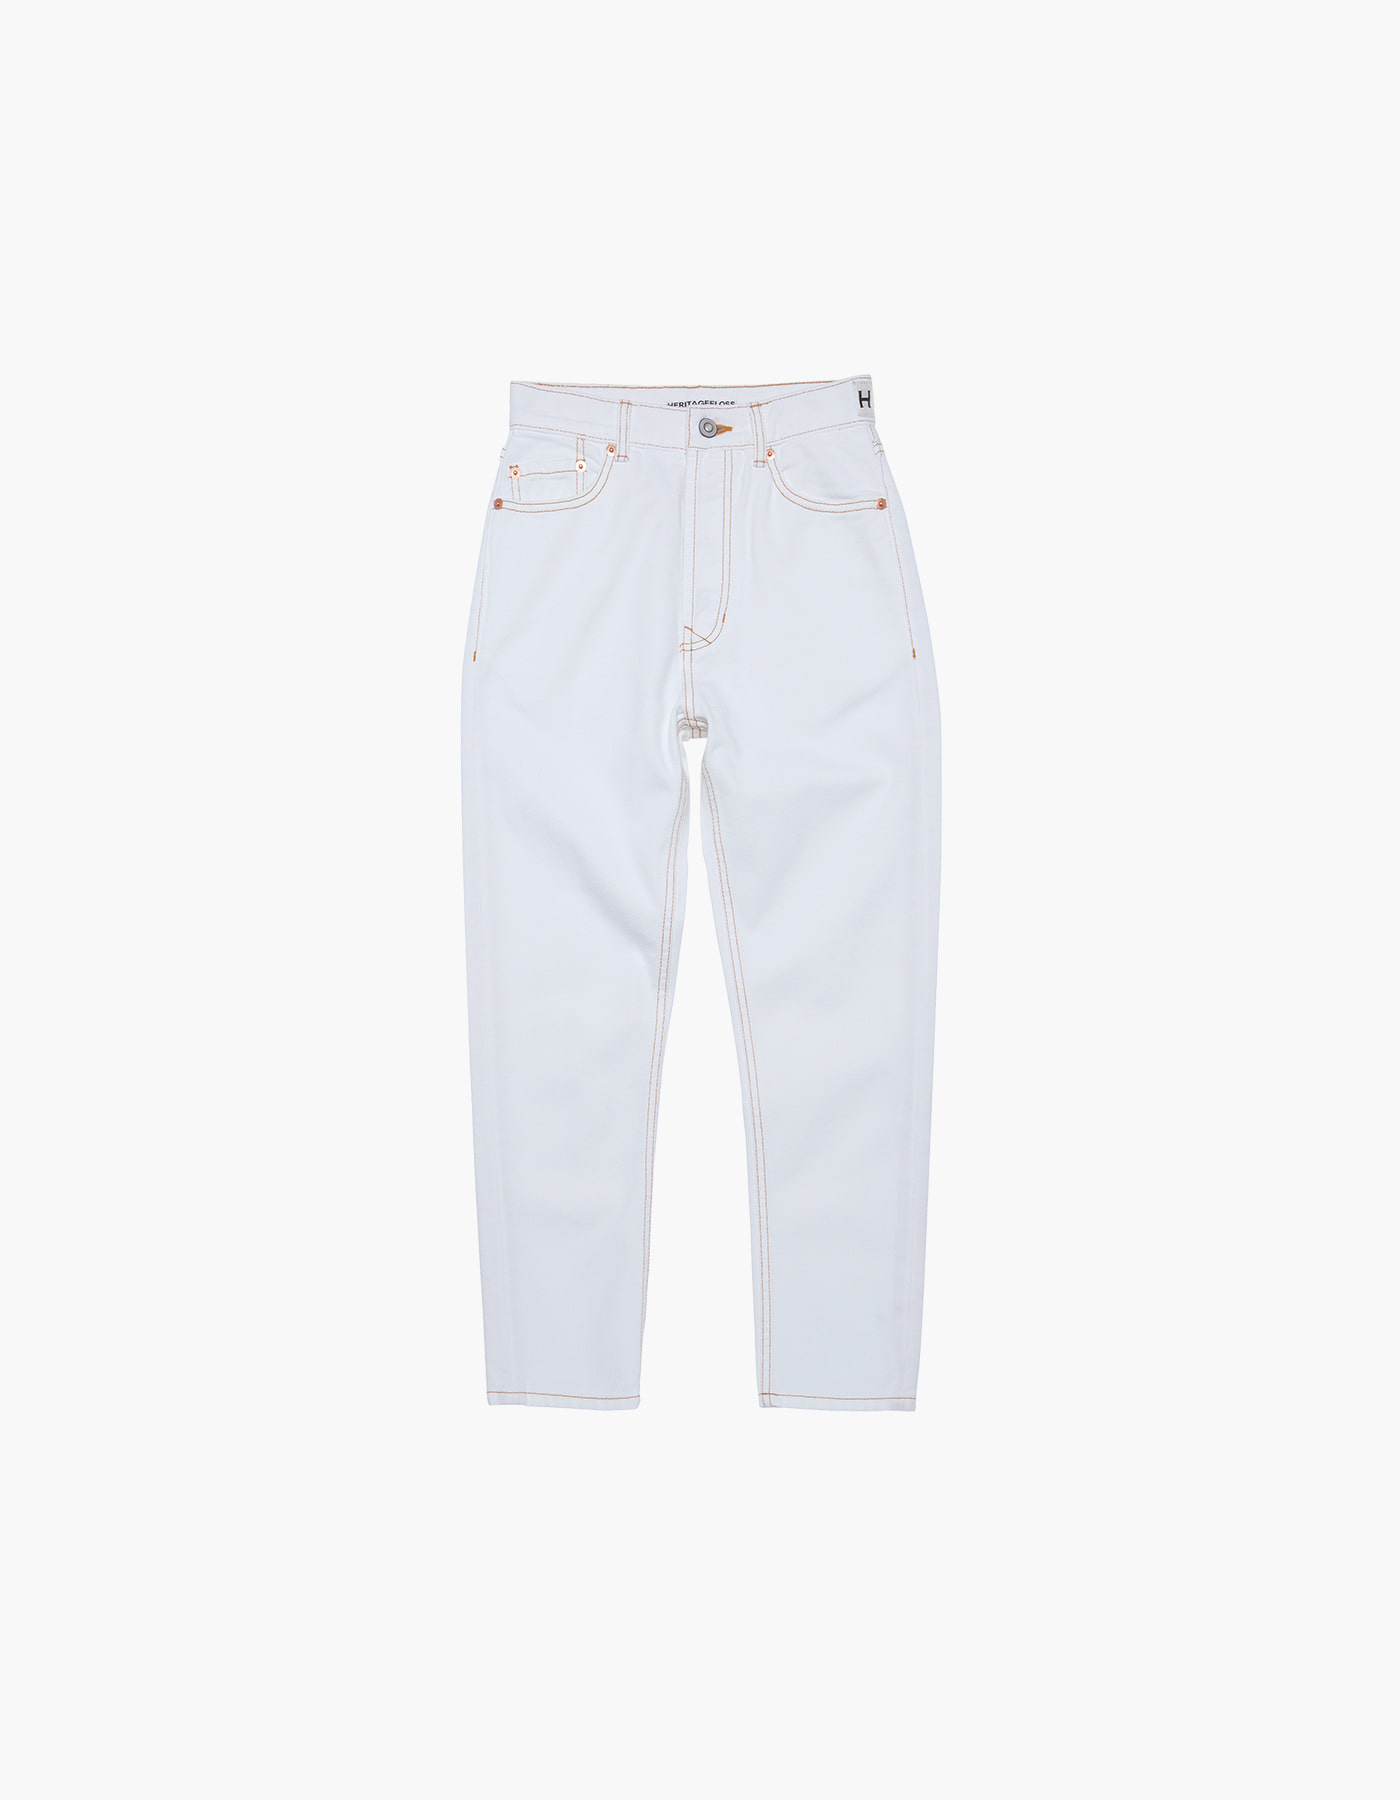 HFC CREST STONE JEANS (W) / WHITE